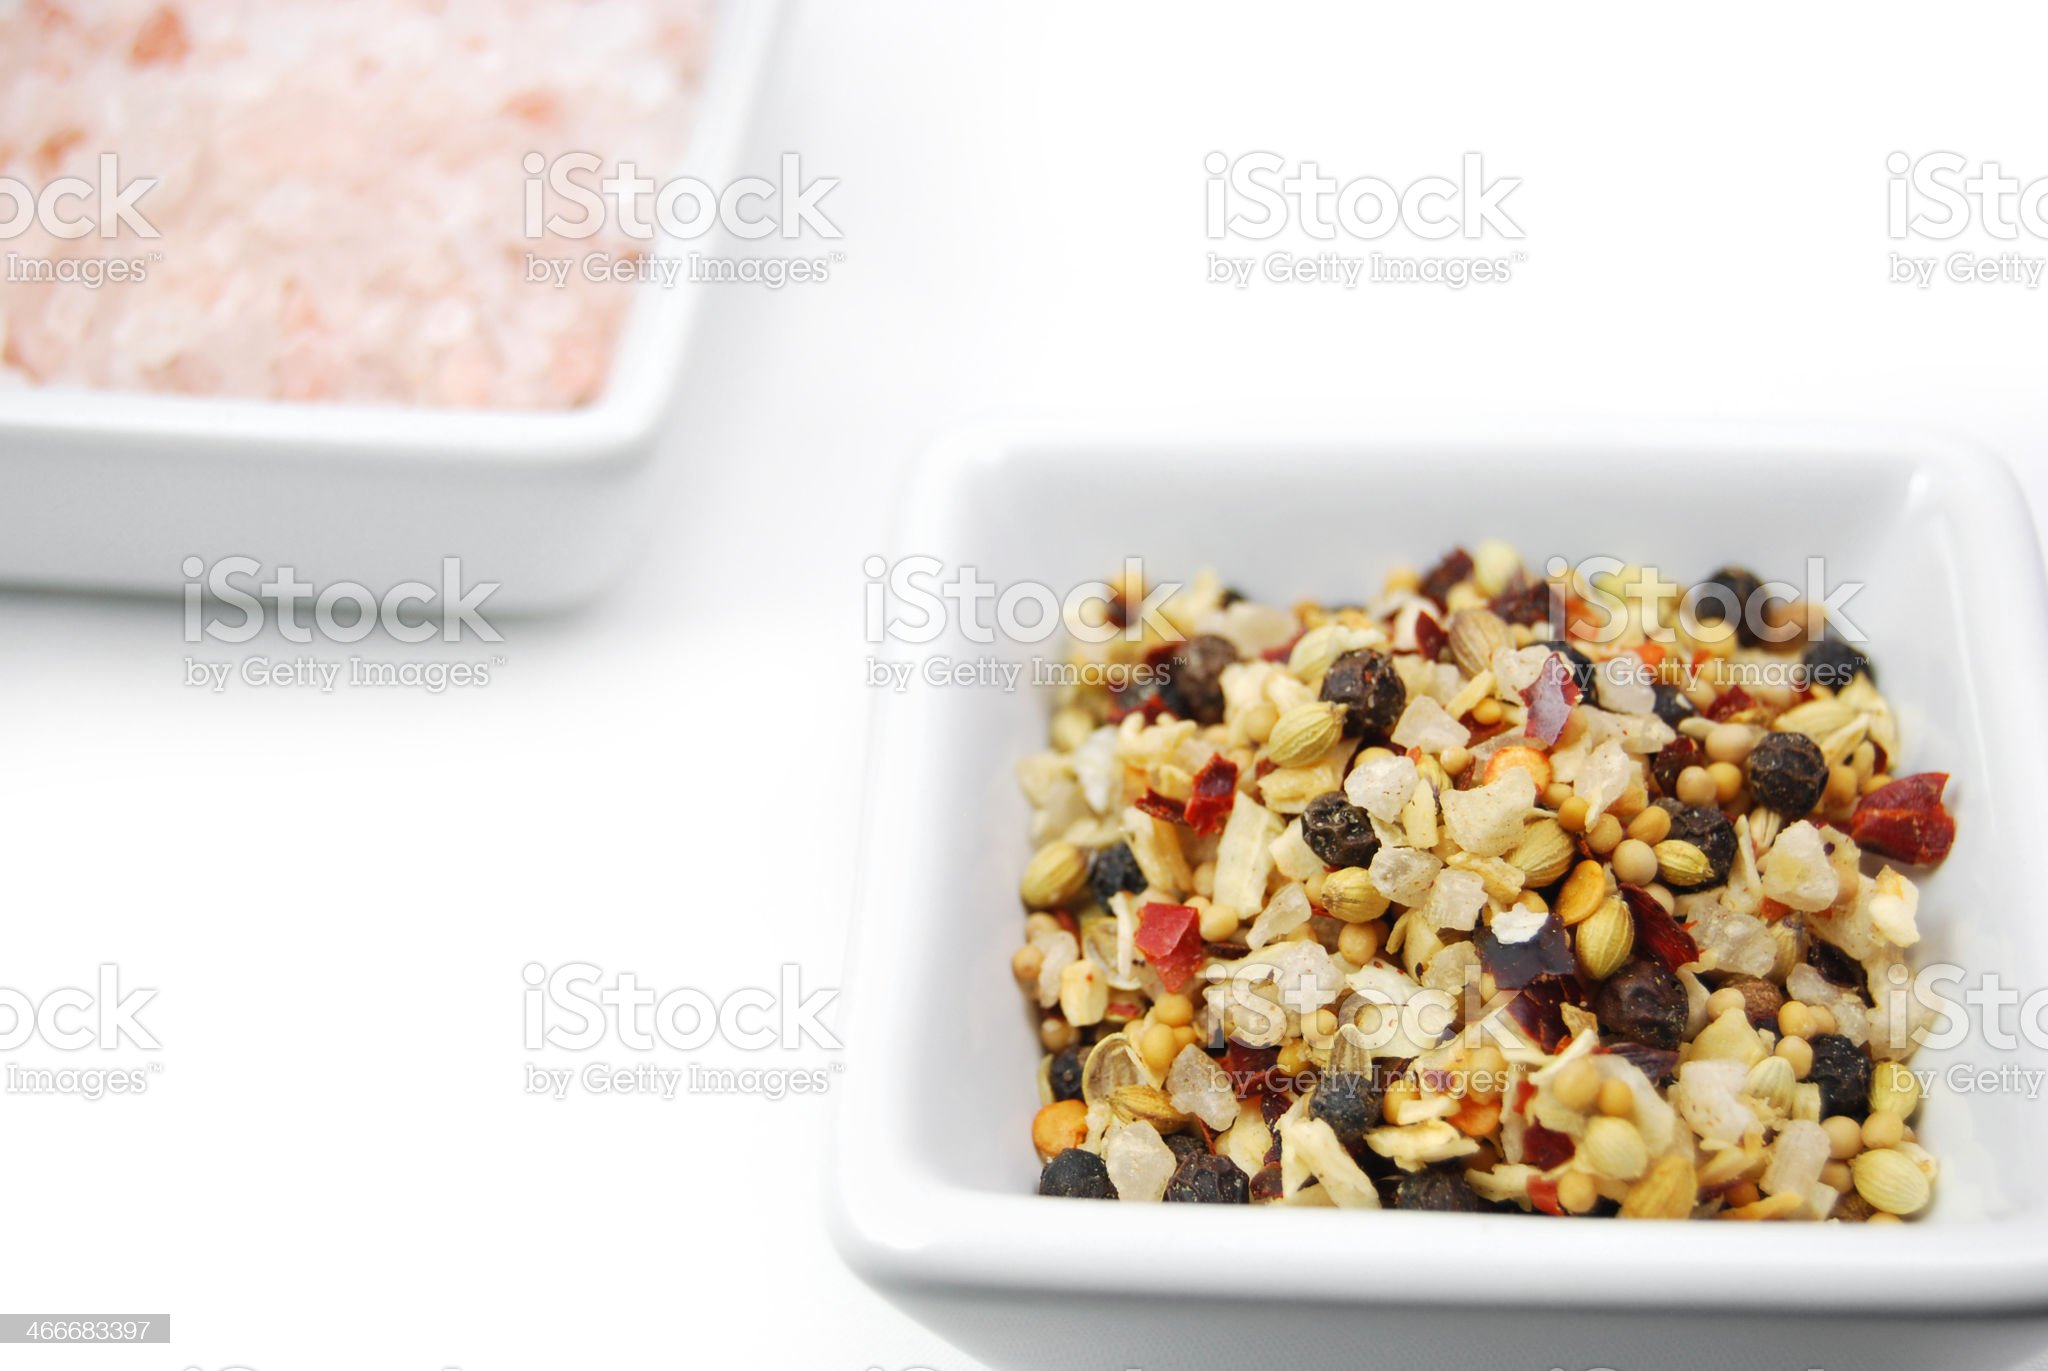 Sea Salt and Black Peppercorn Seasoning Mix royalty-free stock photo